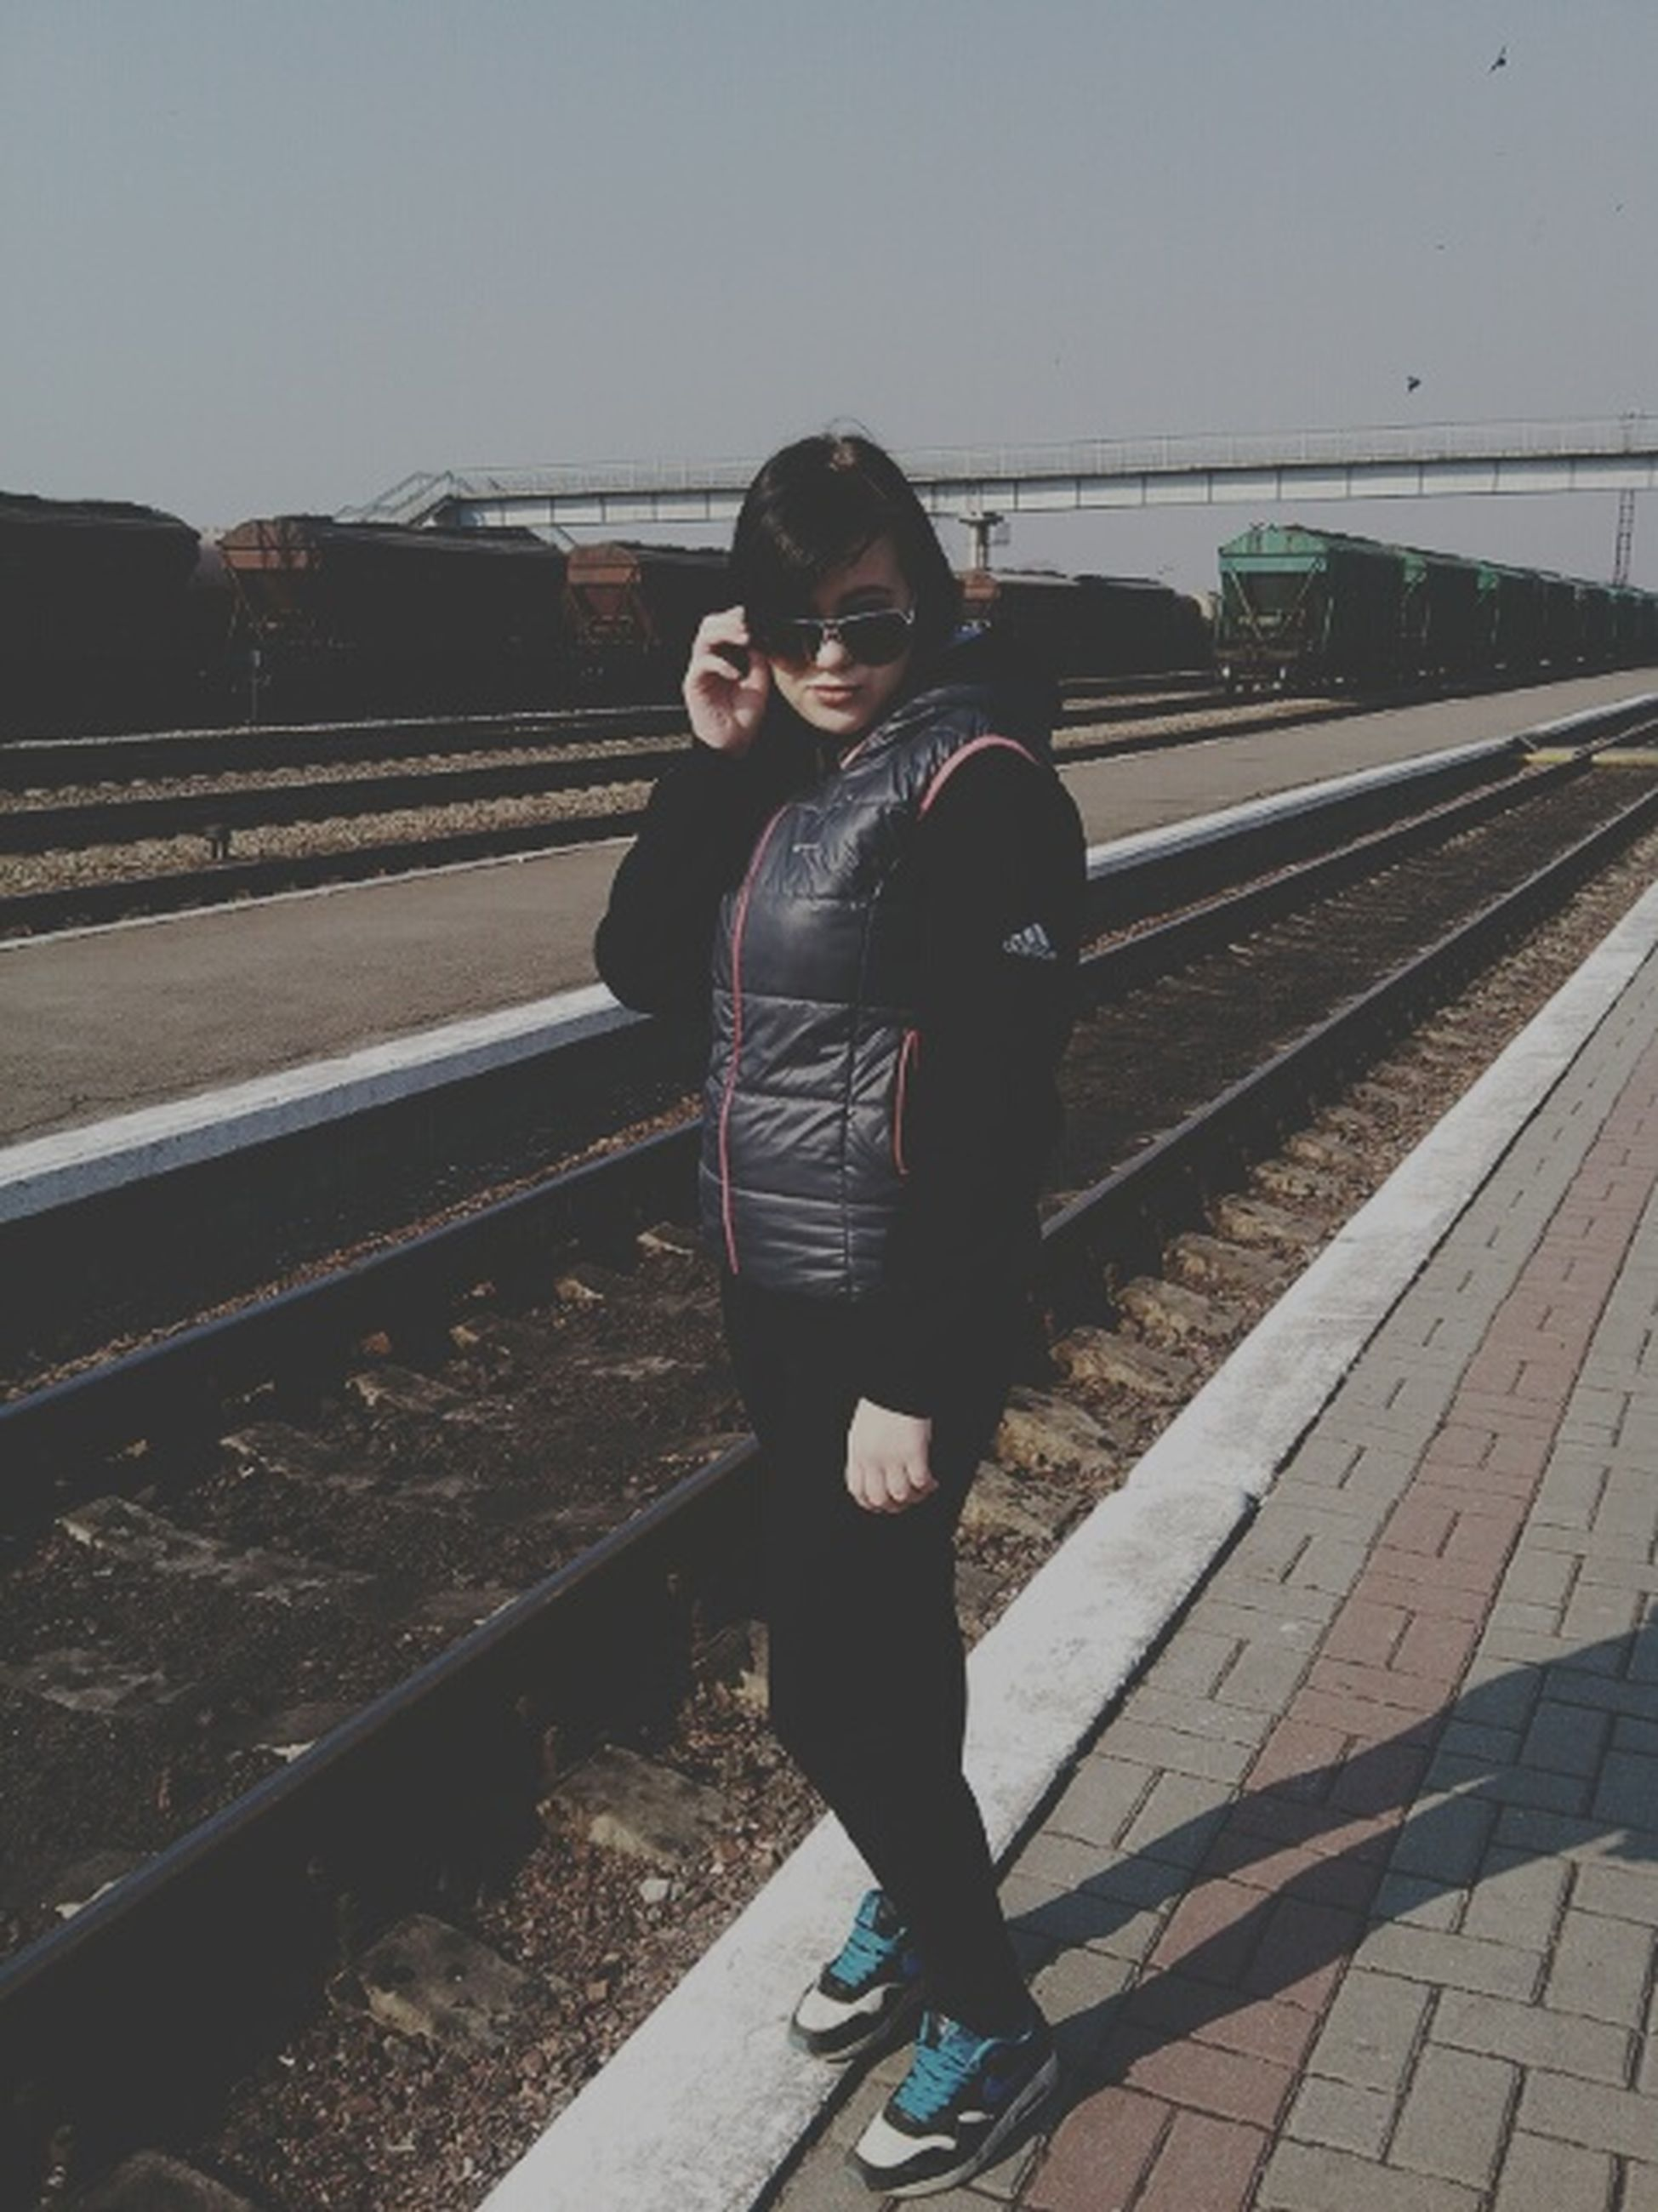 lifestyles, casual clothing, young adult, looking at camera, standing, railroad track, portrait, person, full length, front view, leisure activity, railing, young women, transportation, rail transportation, three quarter length, built structure, railroad station